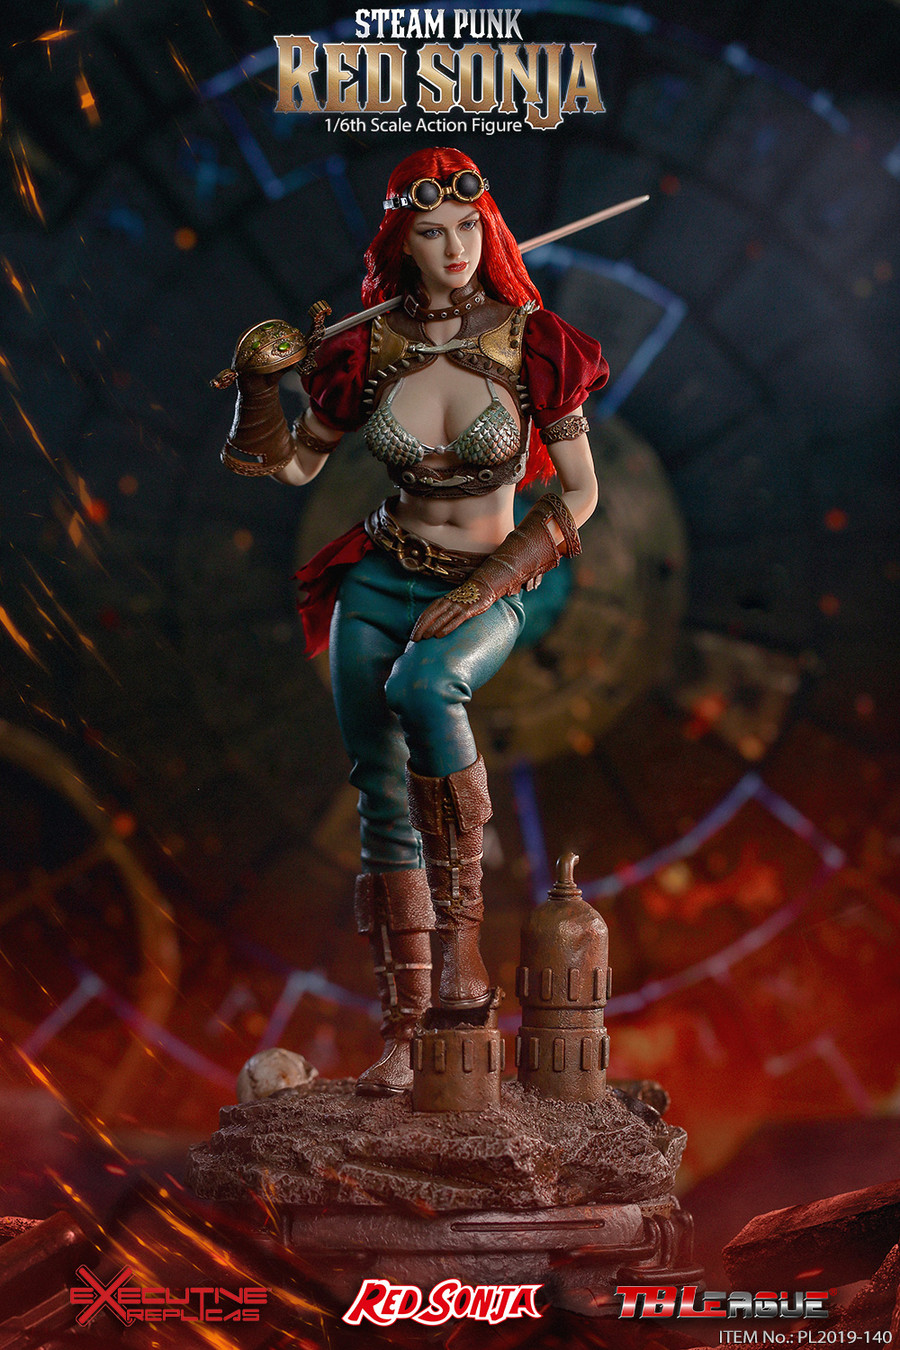 TBLeague - Steam Punk Red Sonja Classic Version